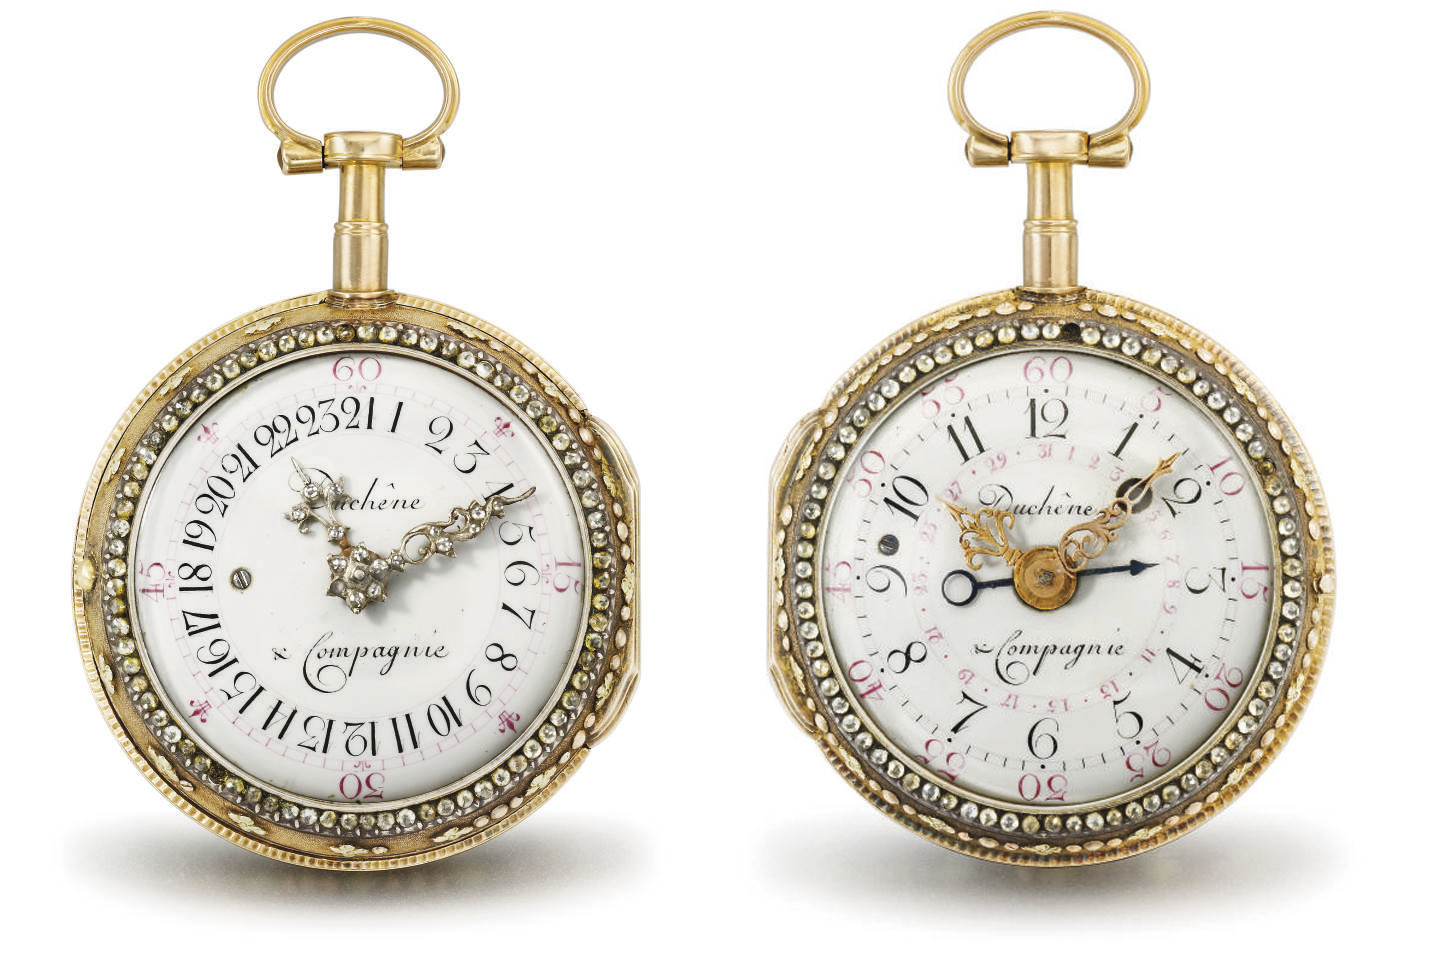 Duchene. A fine and rare 18K gold, enamel and paste-set double dial verge watch with 24 hour indication and date